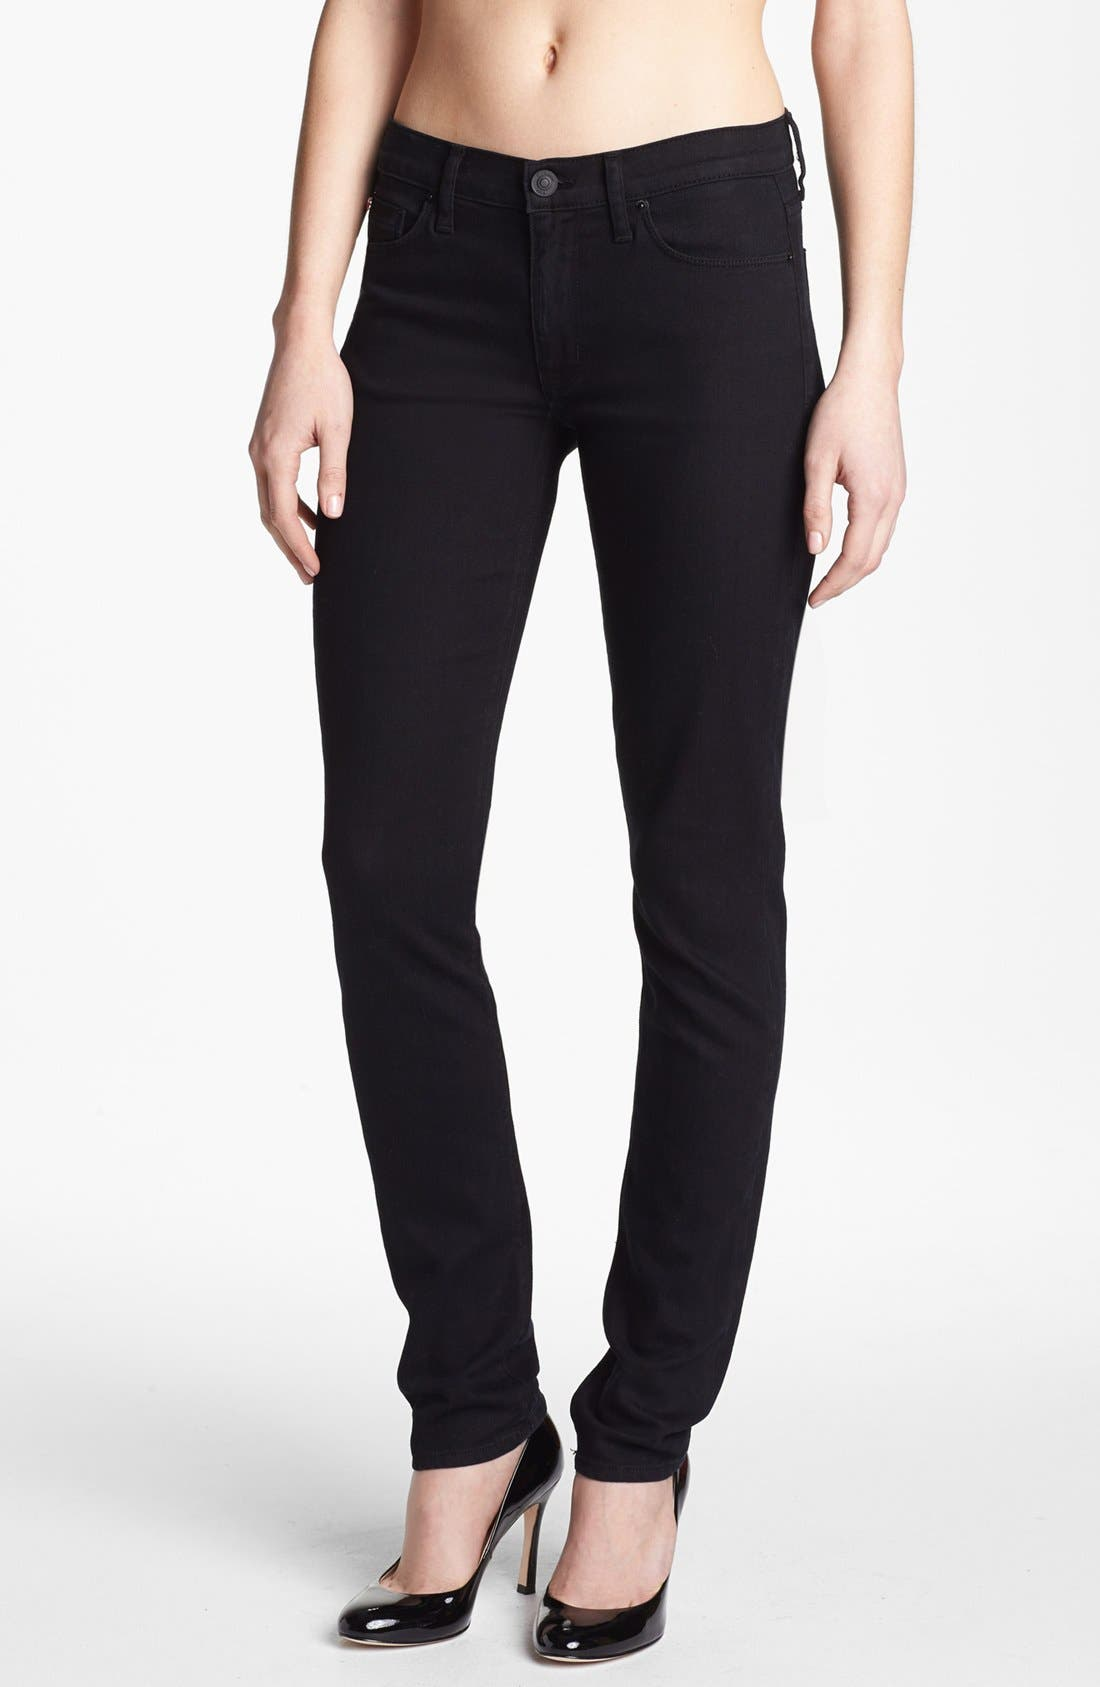 Alternate Image 1 Selected - Hudson Jeans 'Colette' Skinny Stretch Jeans (Black Indigo)